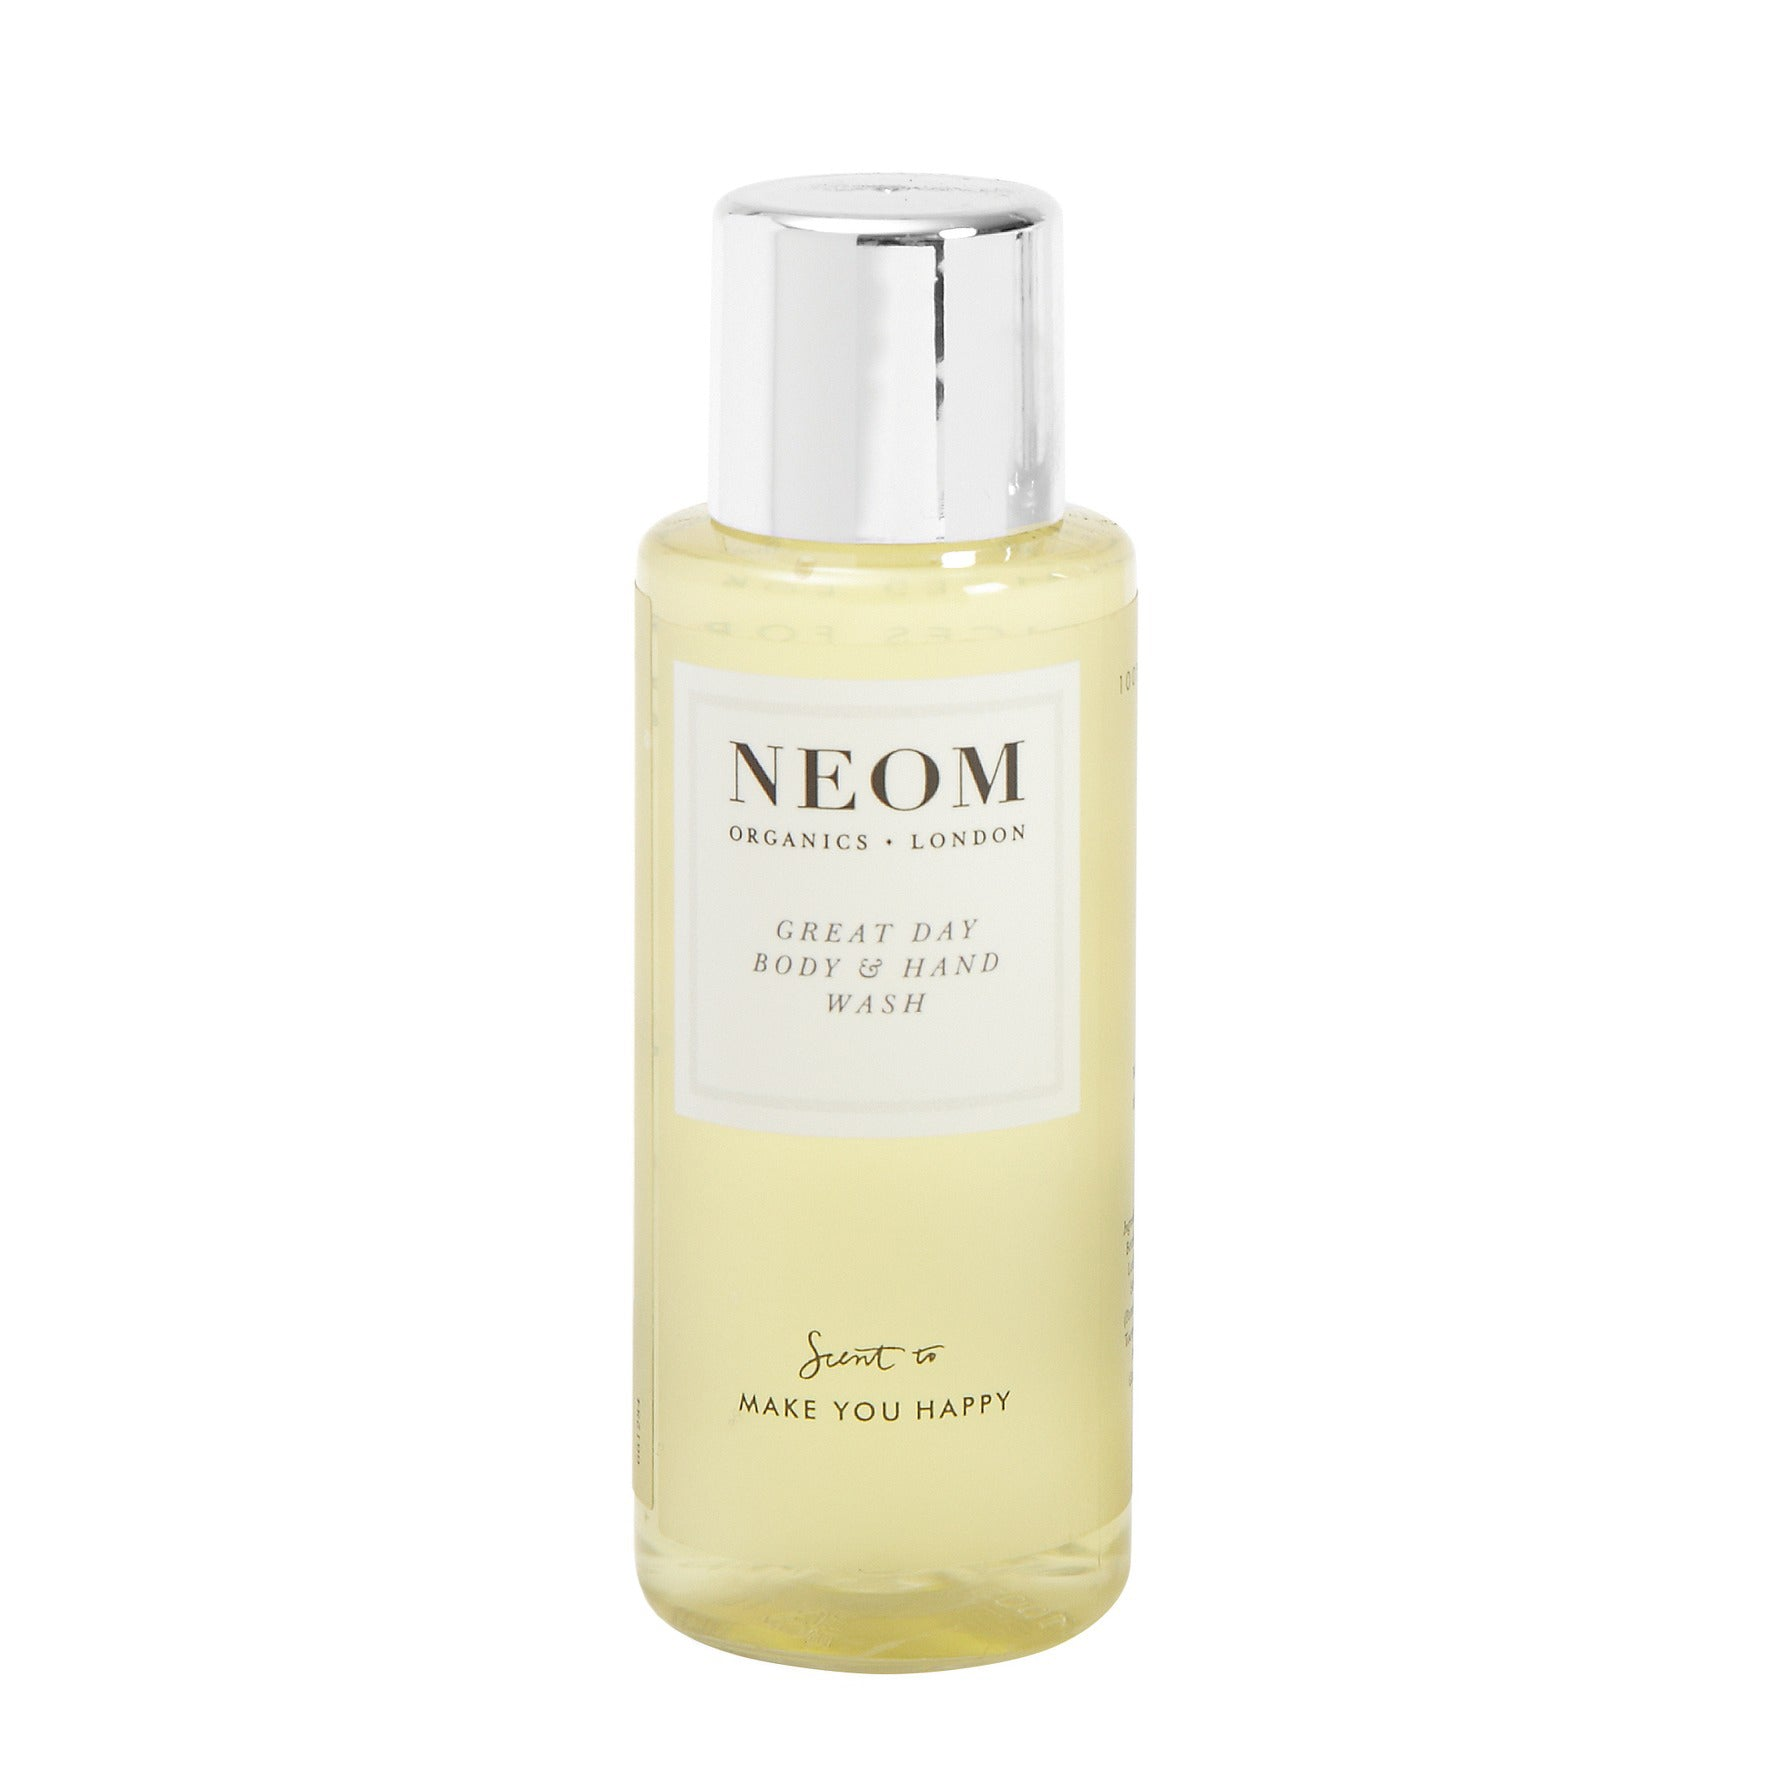 Neom Scent to Make You Happy Great Day Body & Hand Wash 50ml